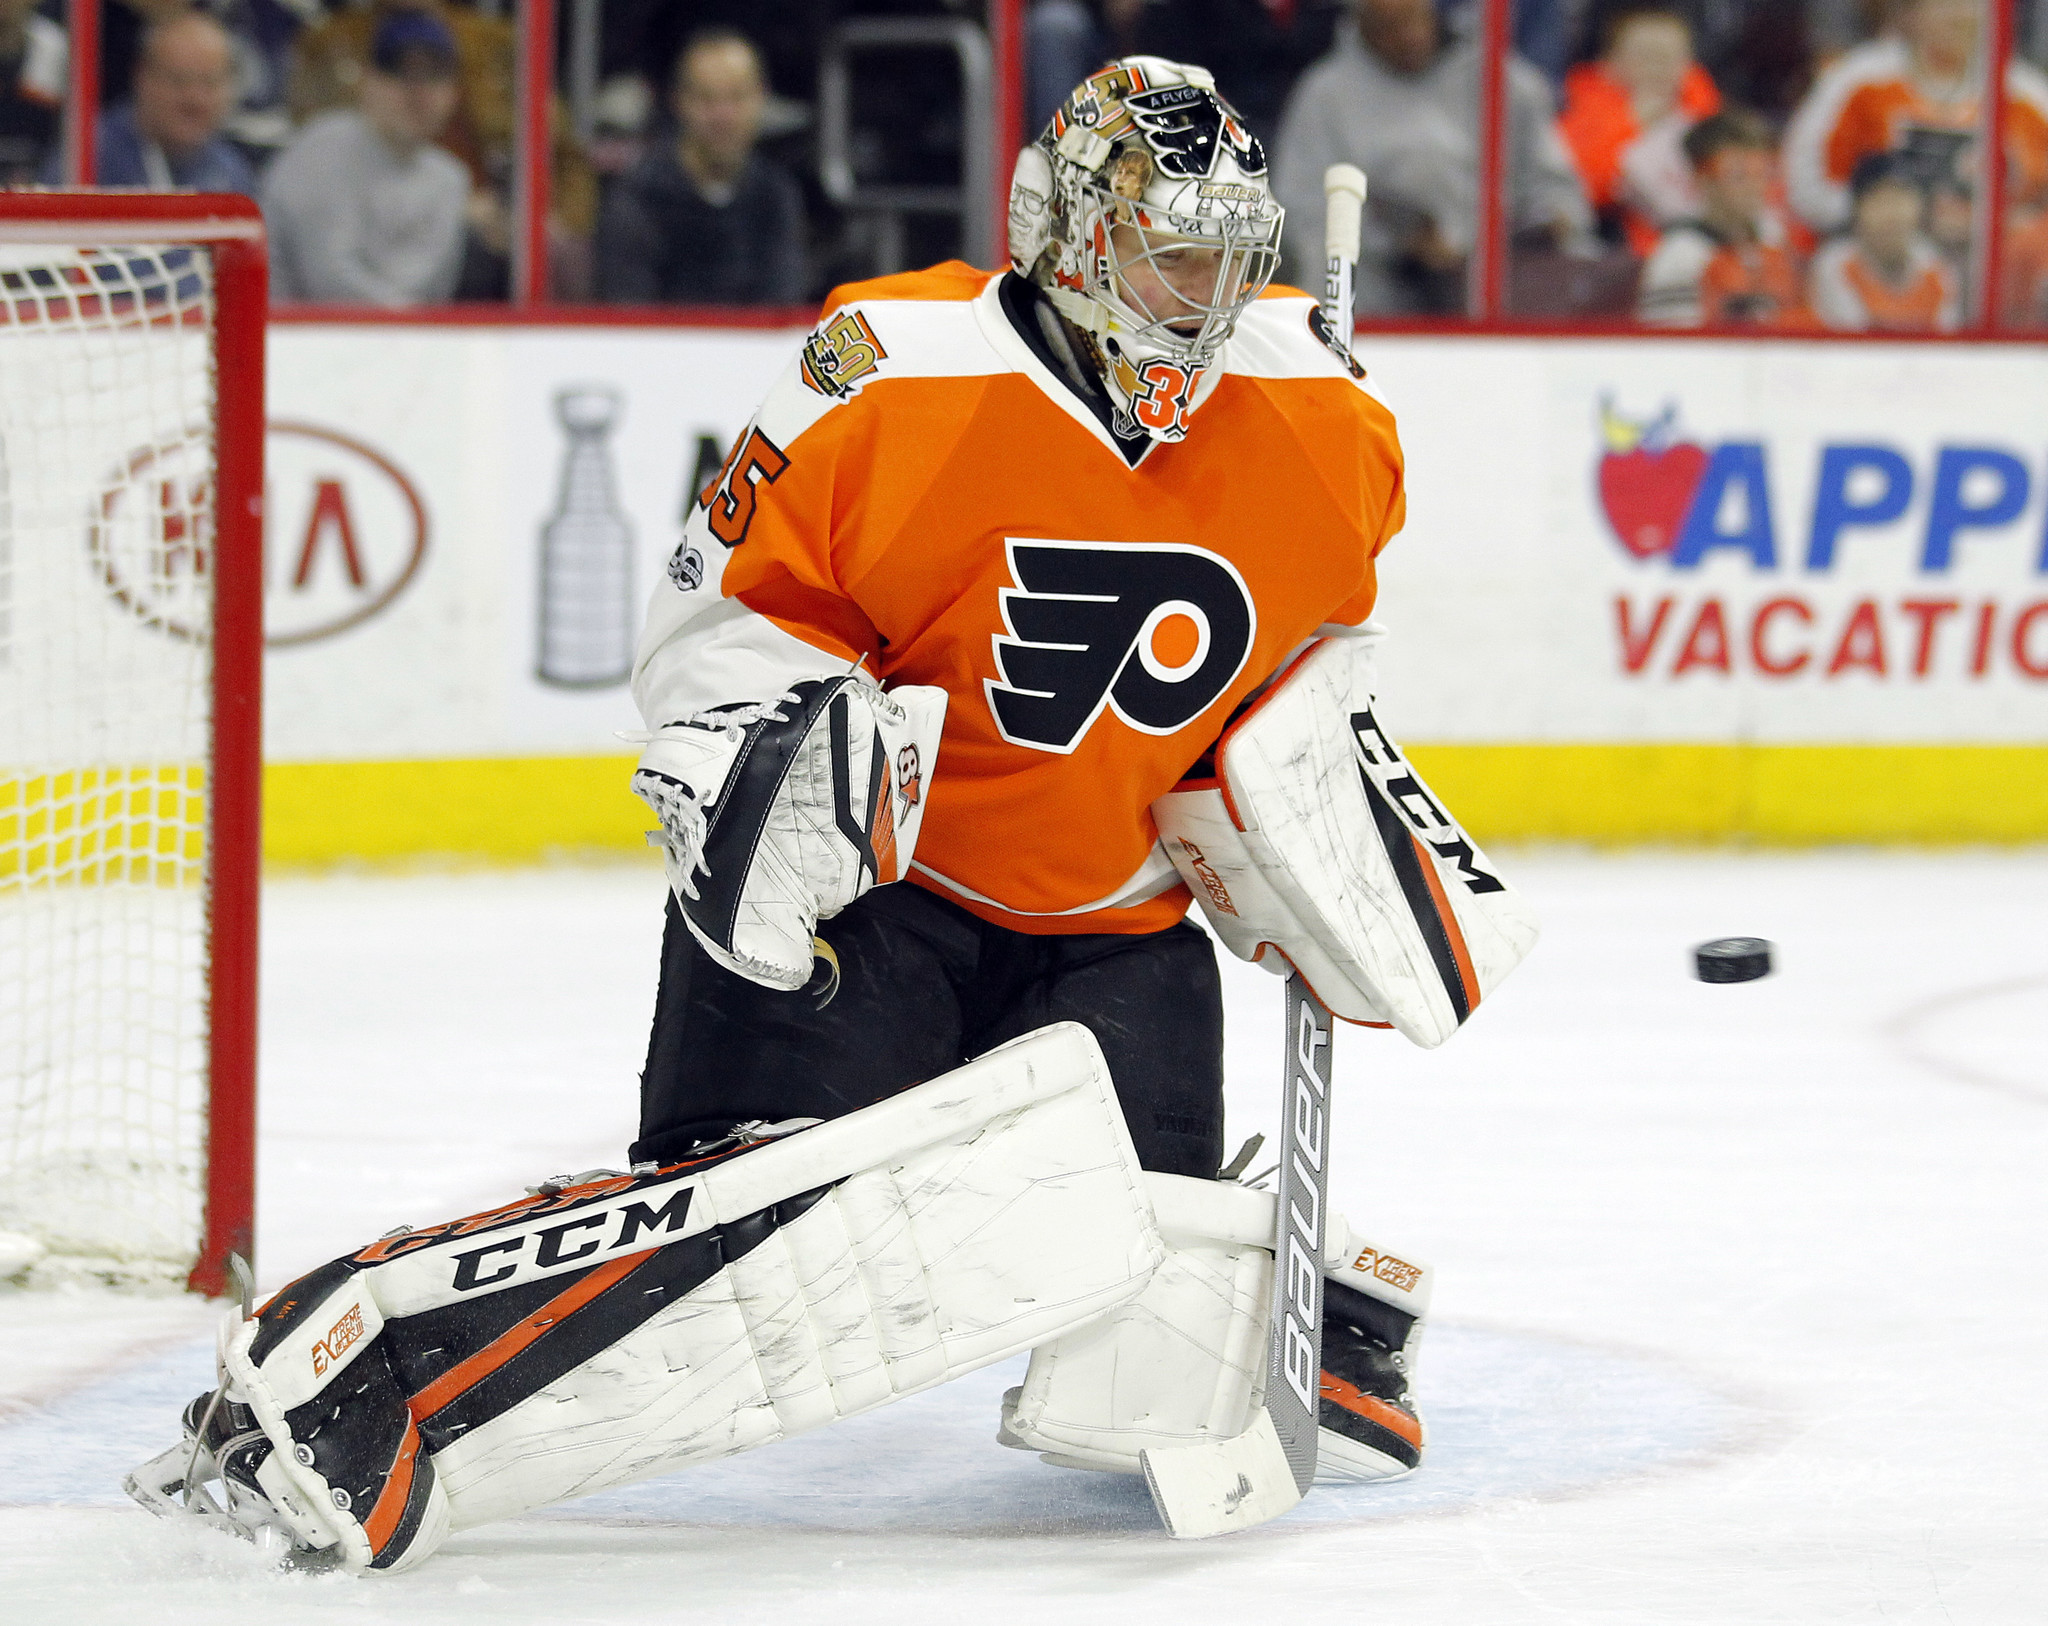 Flyers double up reeling Blue Jackets 4-2 - The Morning Call